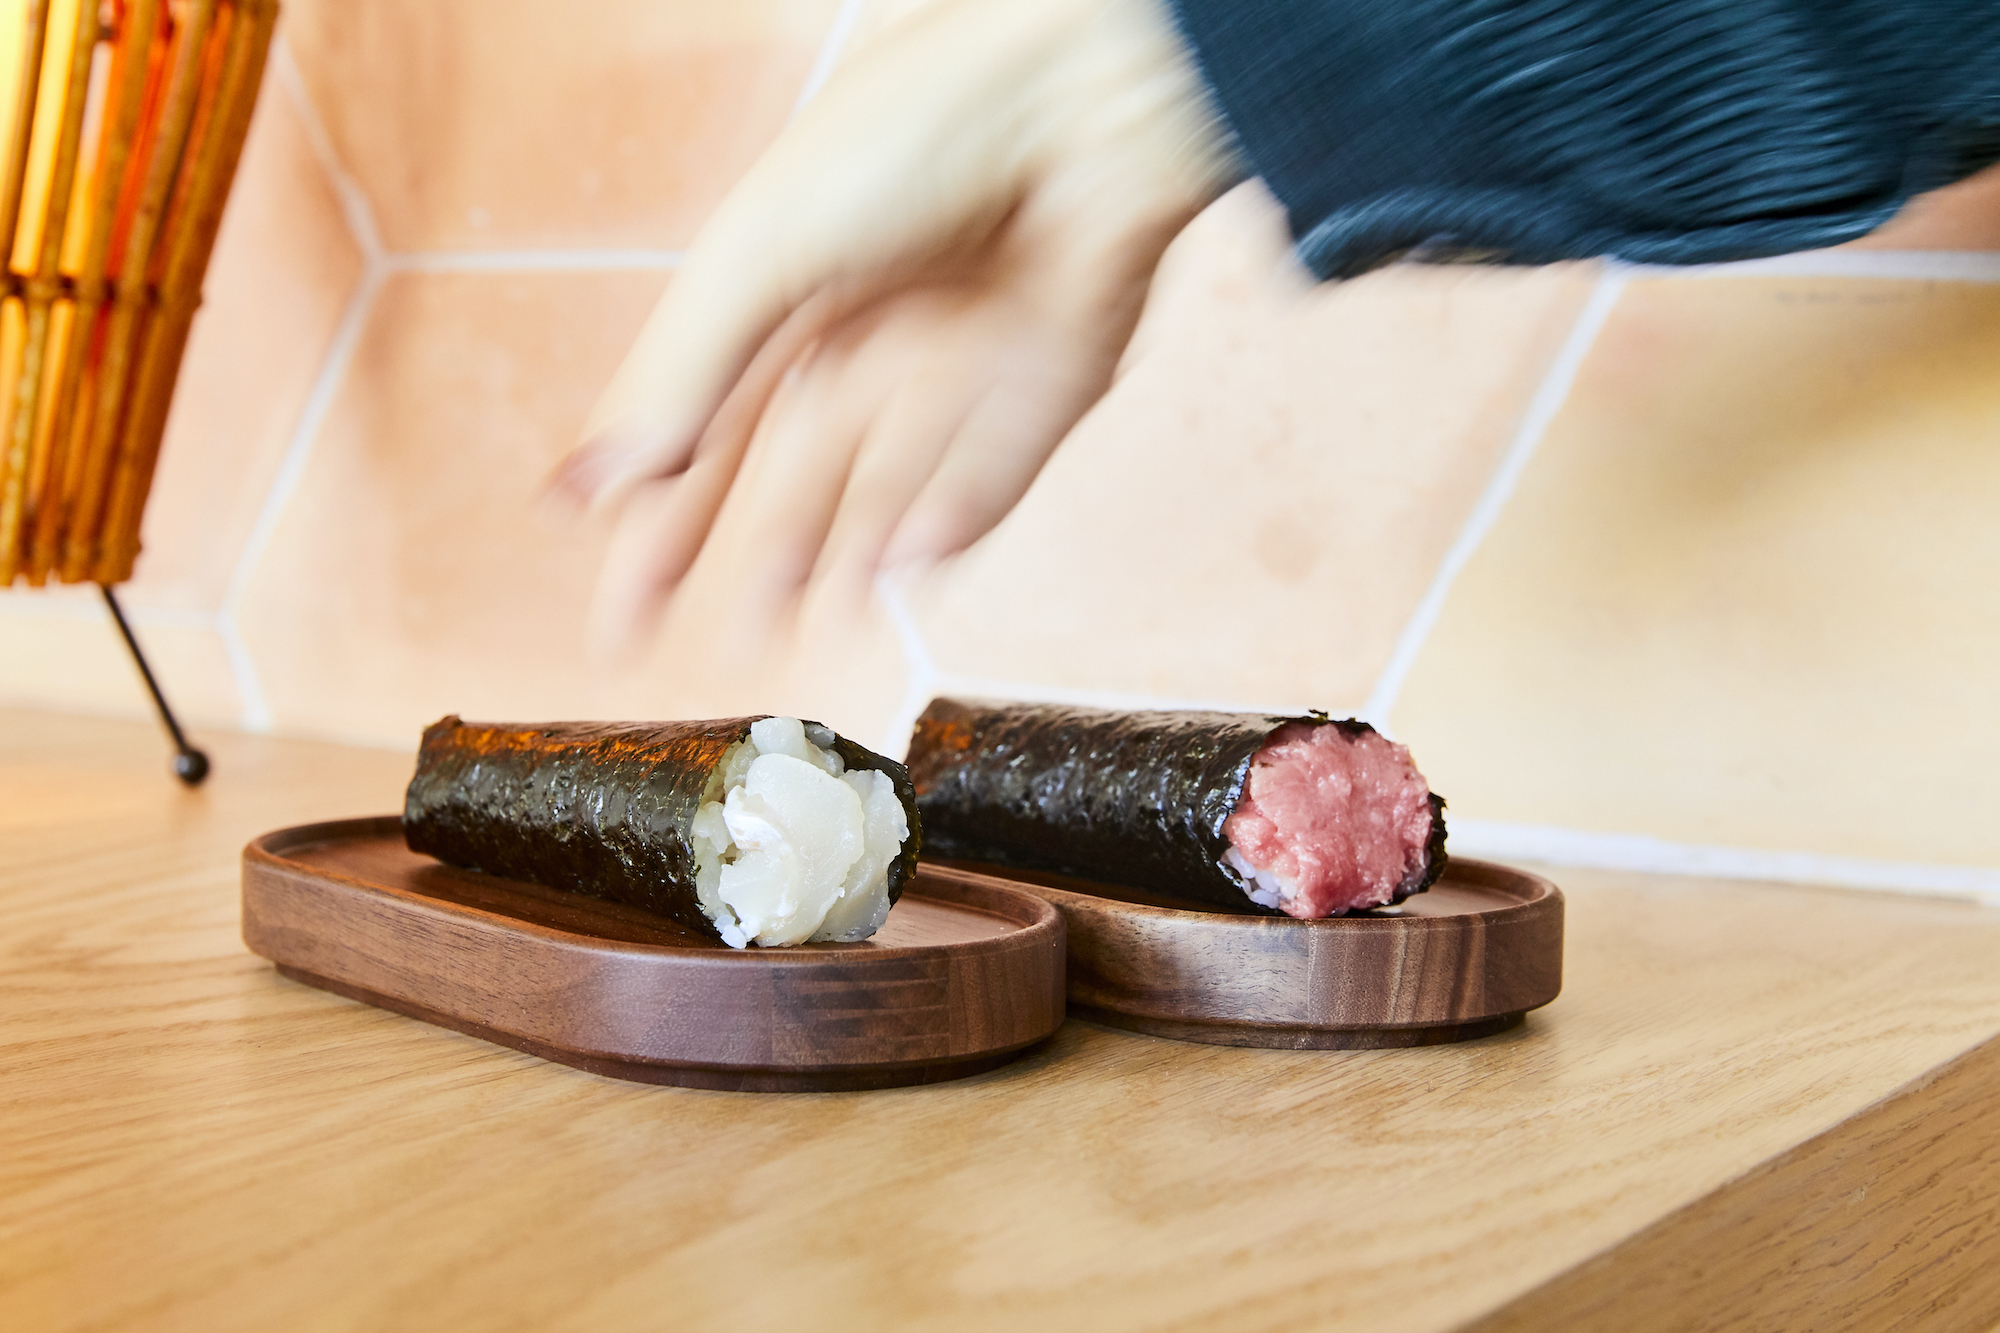 A hand blurs in to grab one of two sushi hand rolls on a wooden plate.